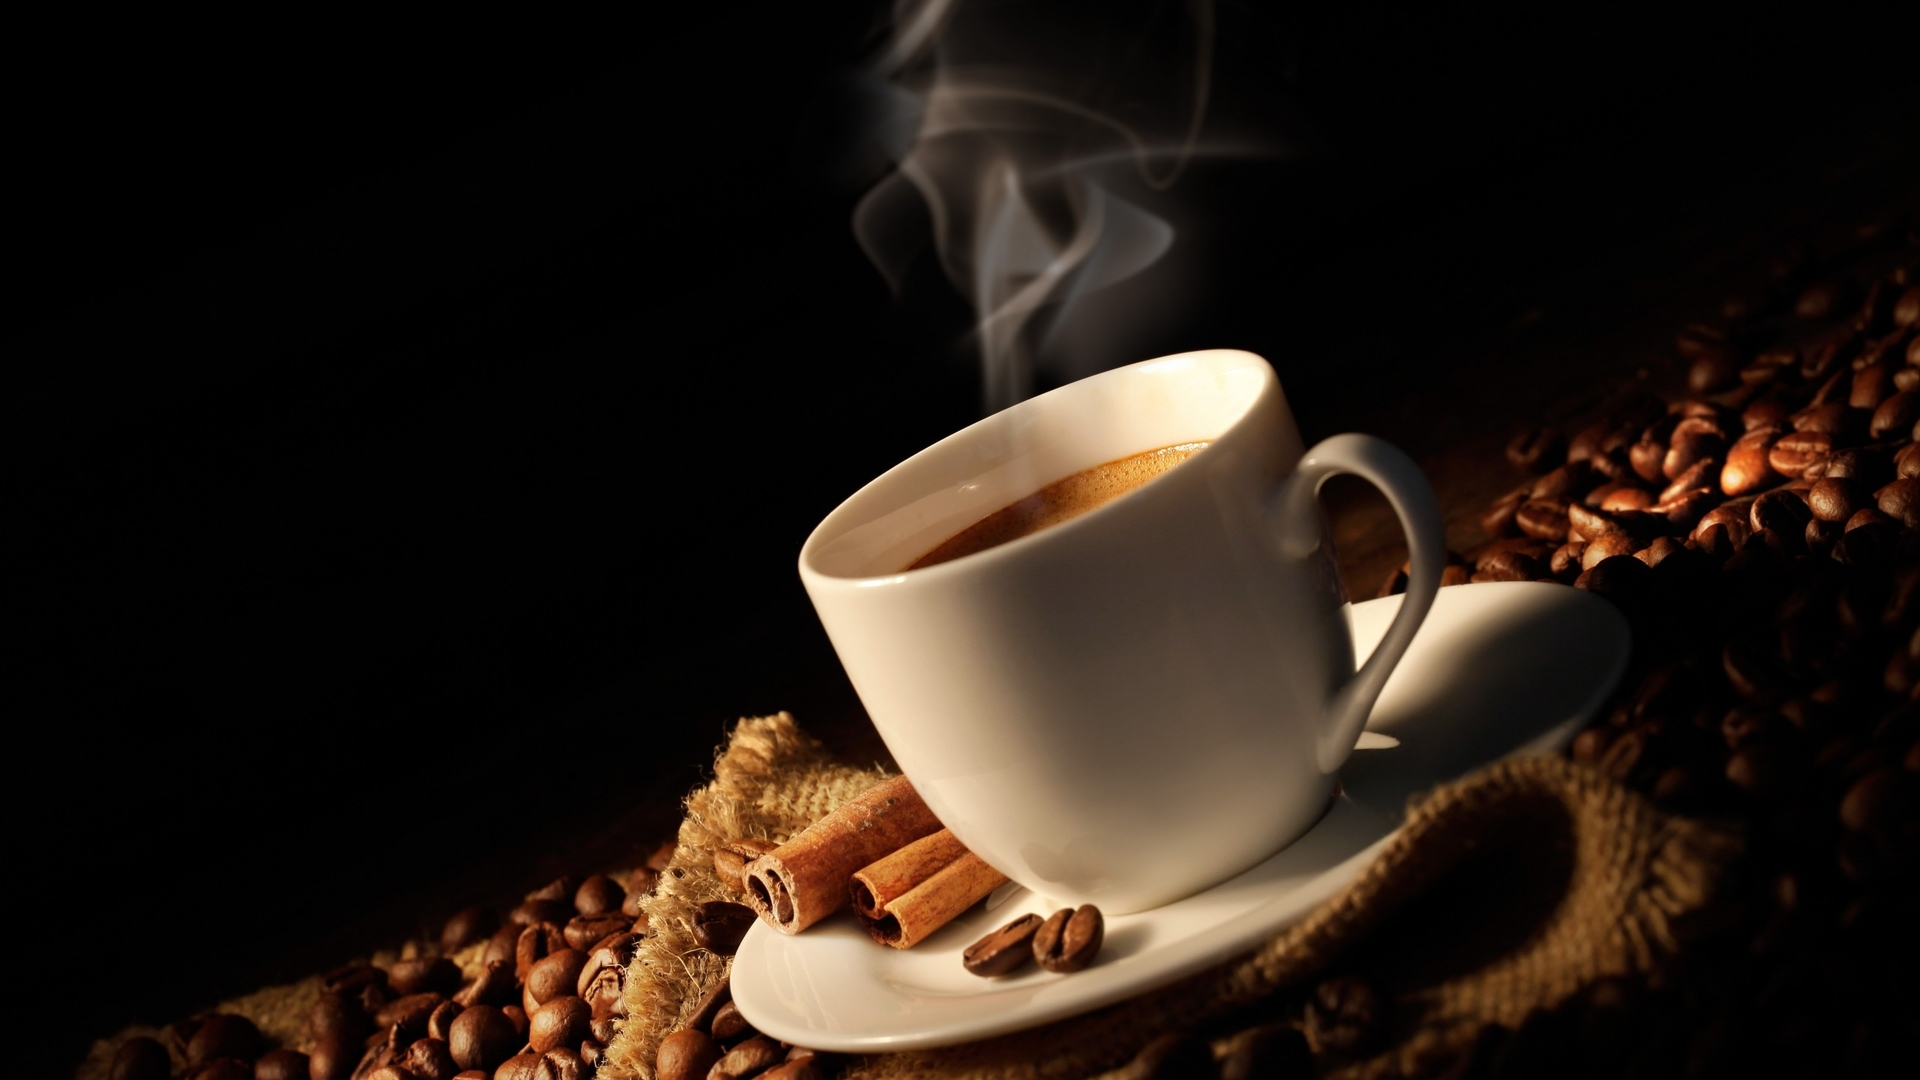 hot coffee wallpaper hd - photo #5